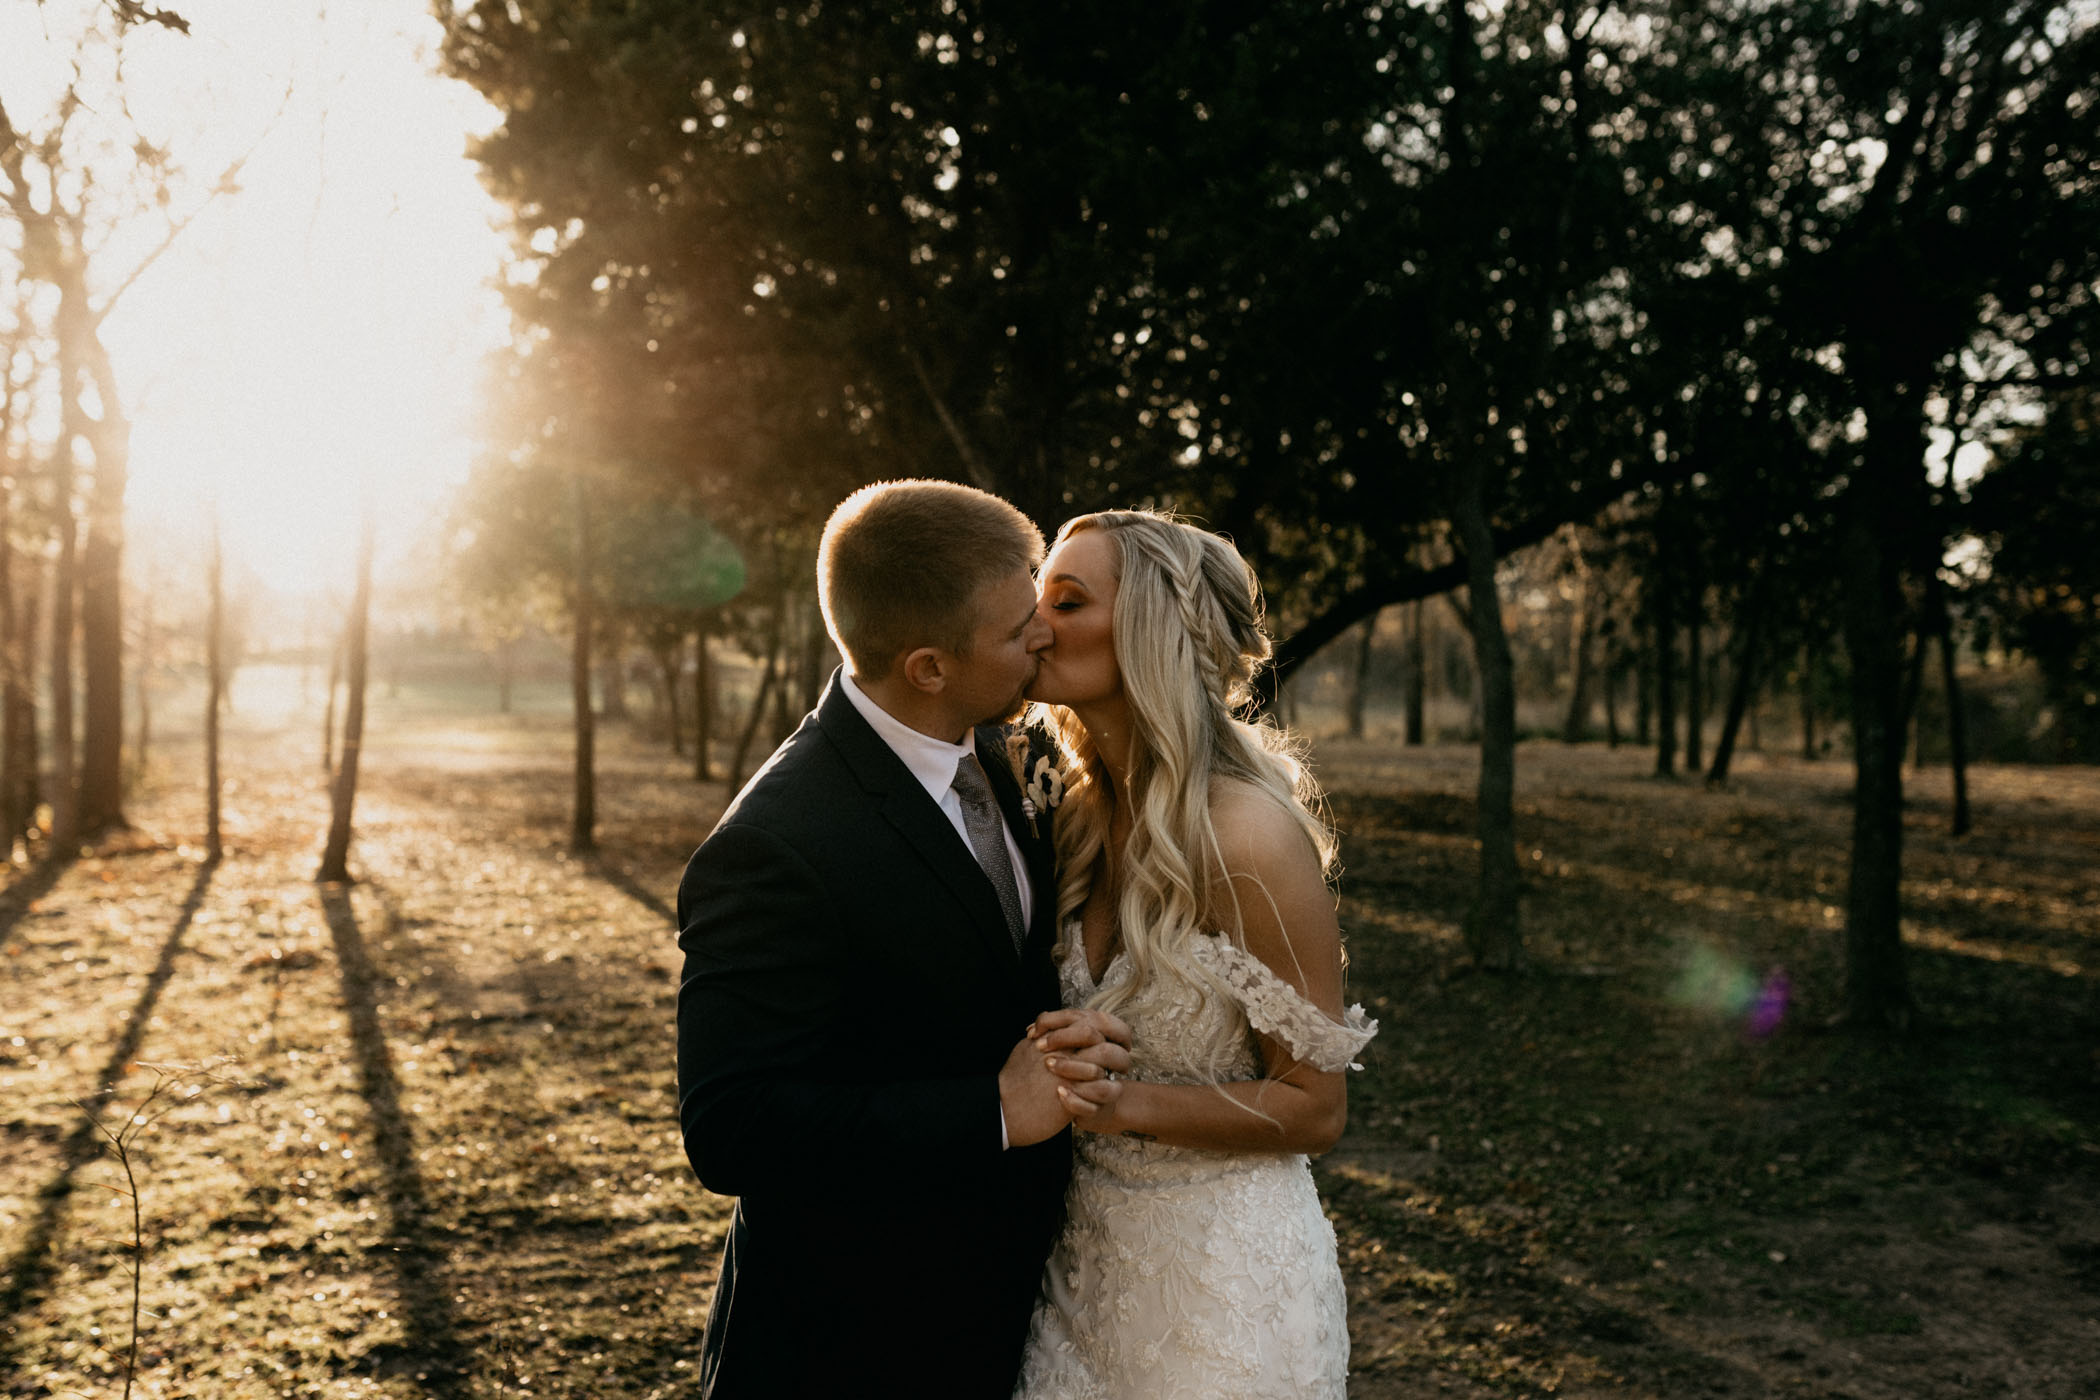 winter wedding day bride and groom portraits at golden hour